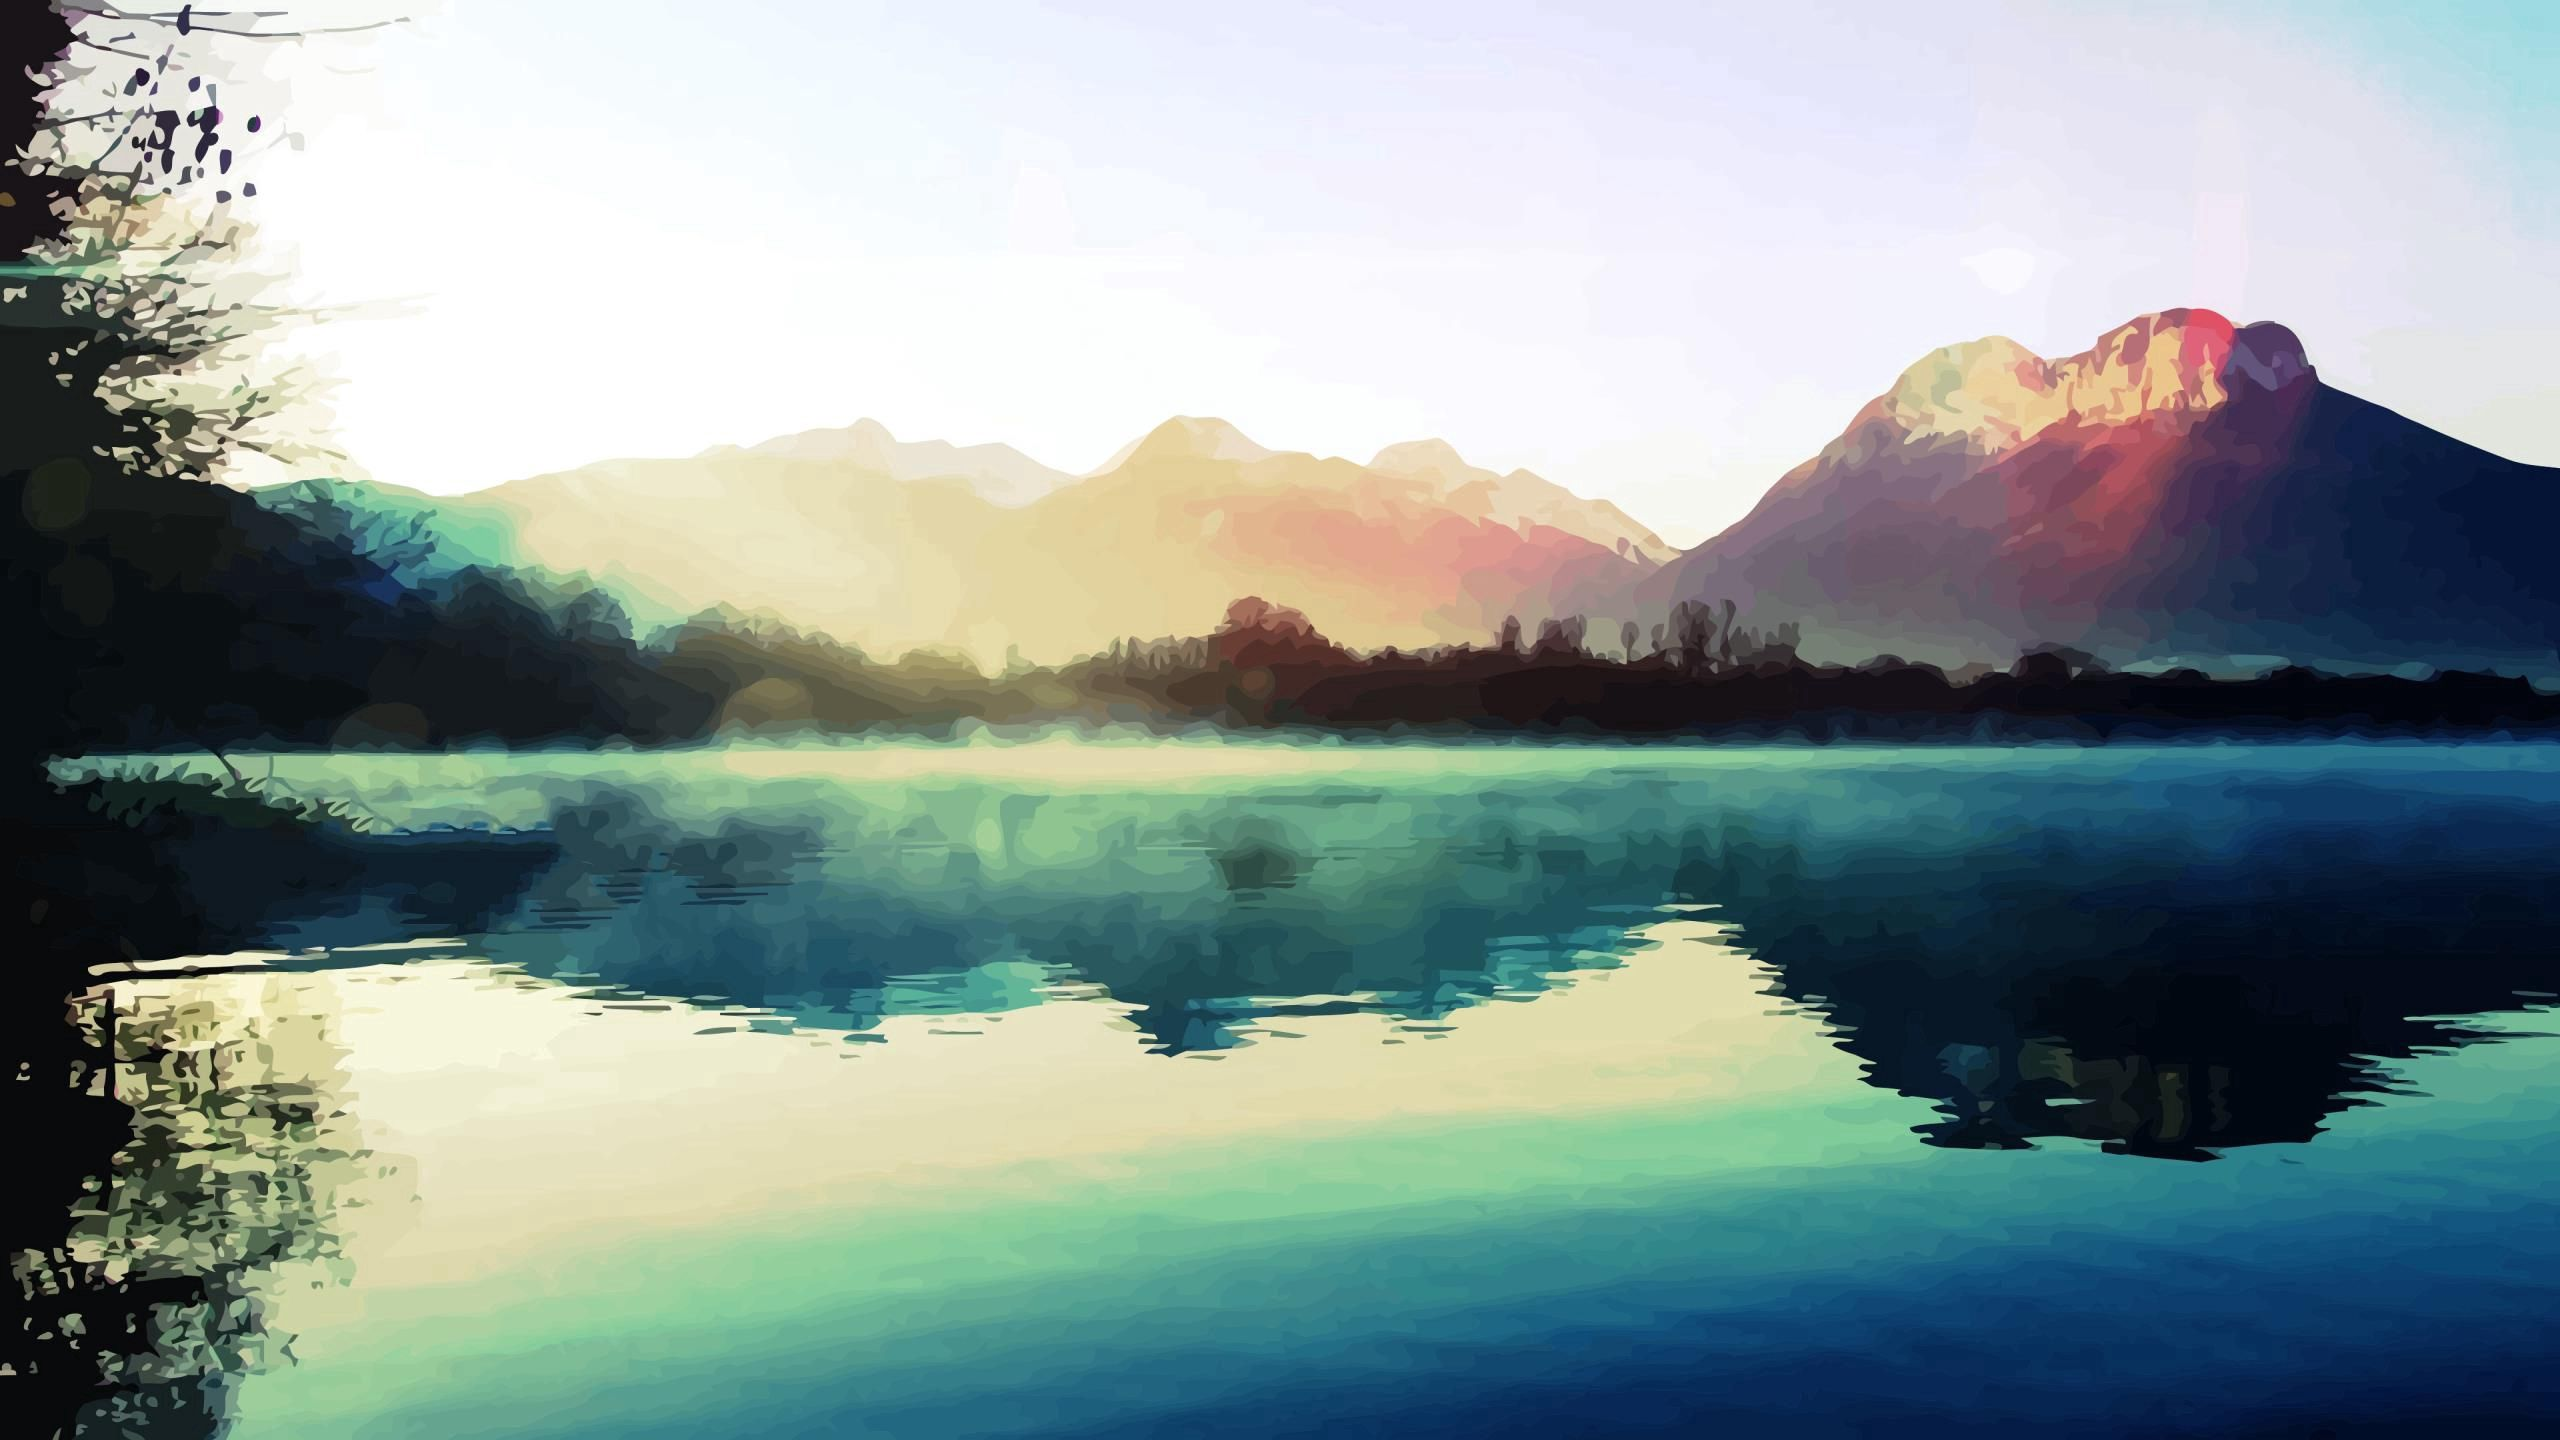 152001 download wallpaper Abstract, Nature, Shine, Light, Lake screensavers and pictures for free